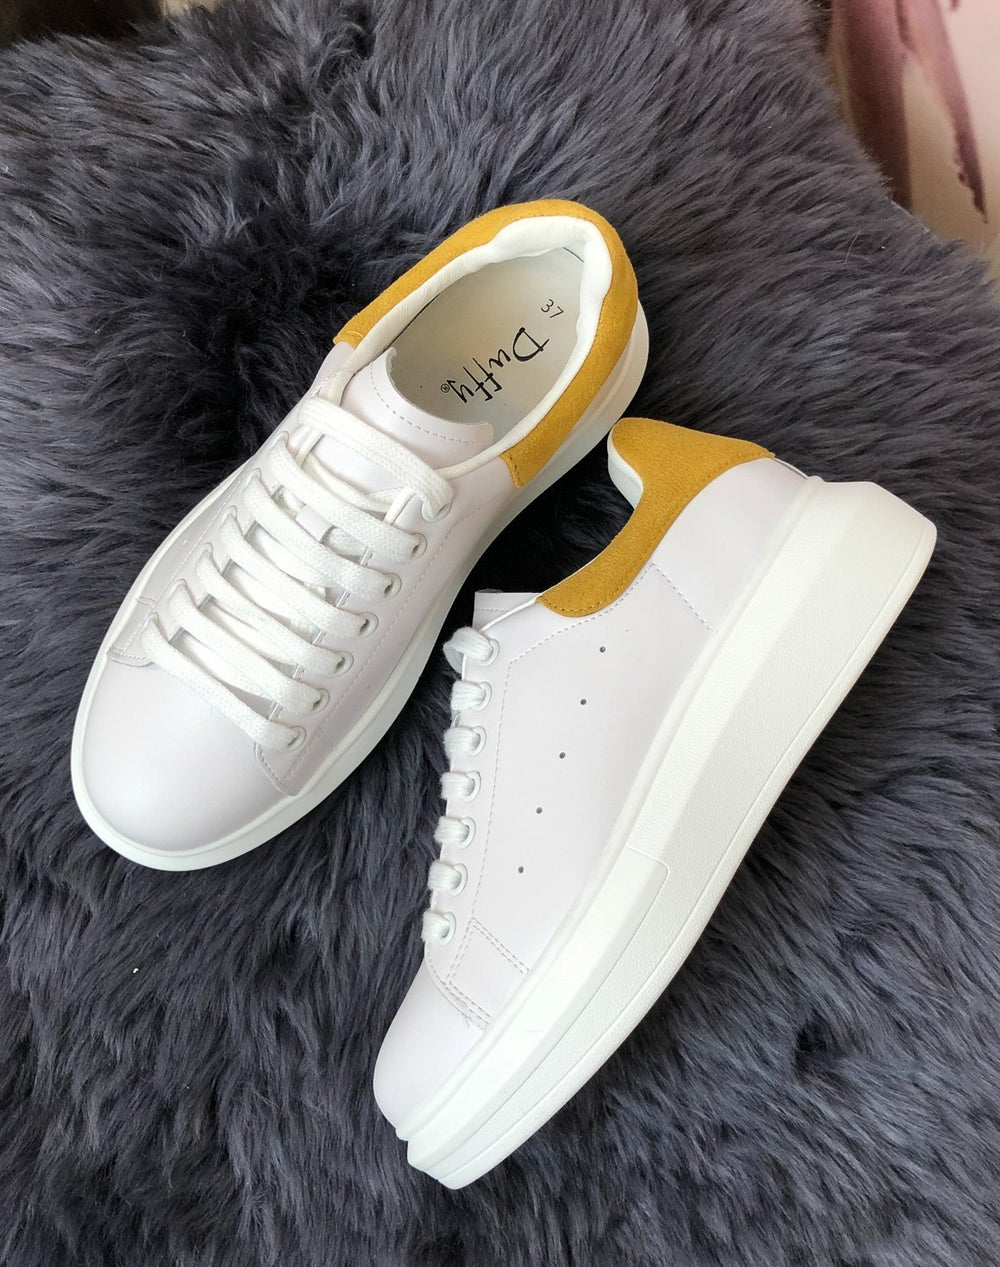 Duffy 7520131 sneakers white/yellow - Online-Mode